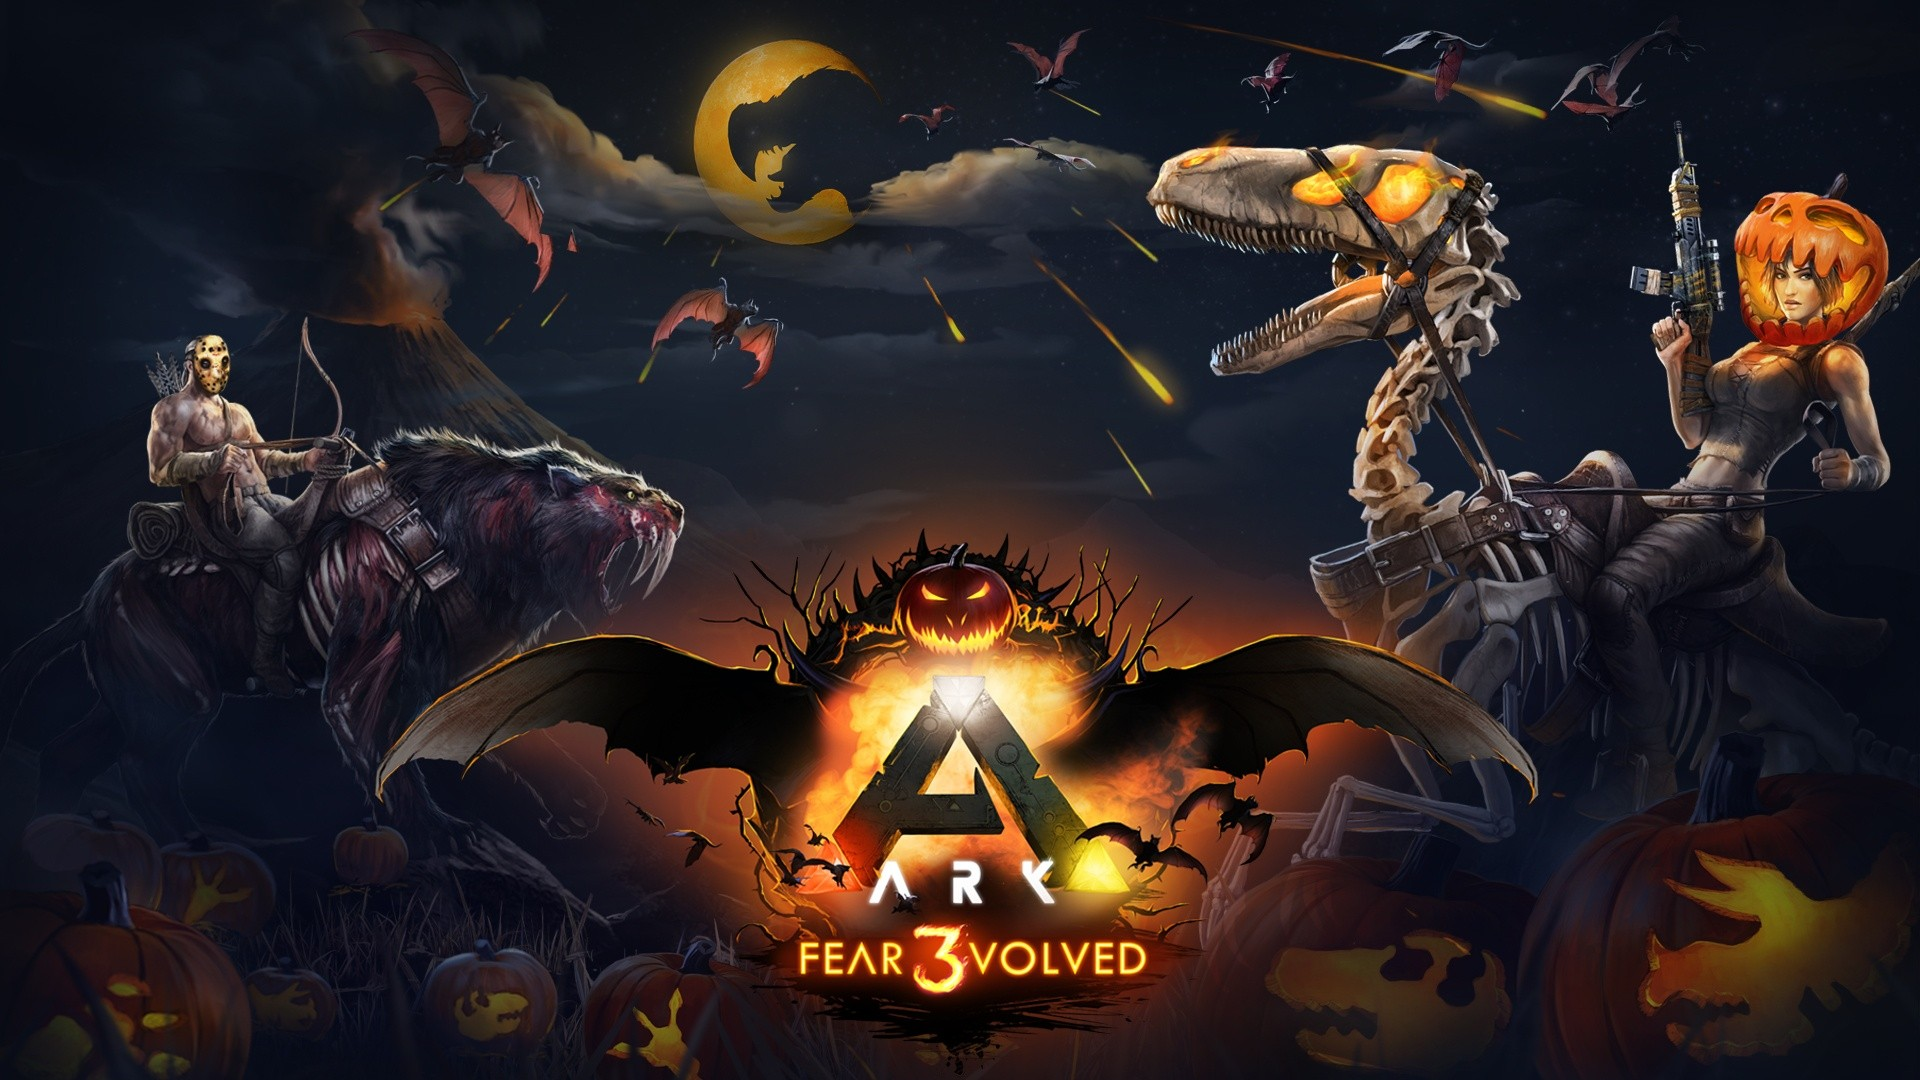 ARK Fear Evolved 3